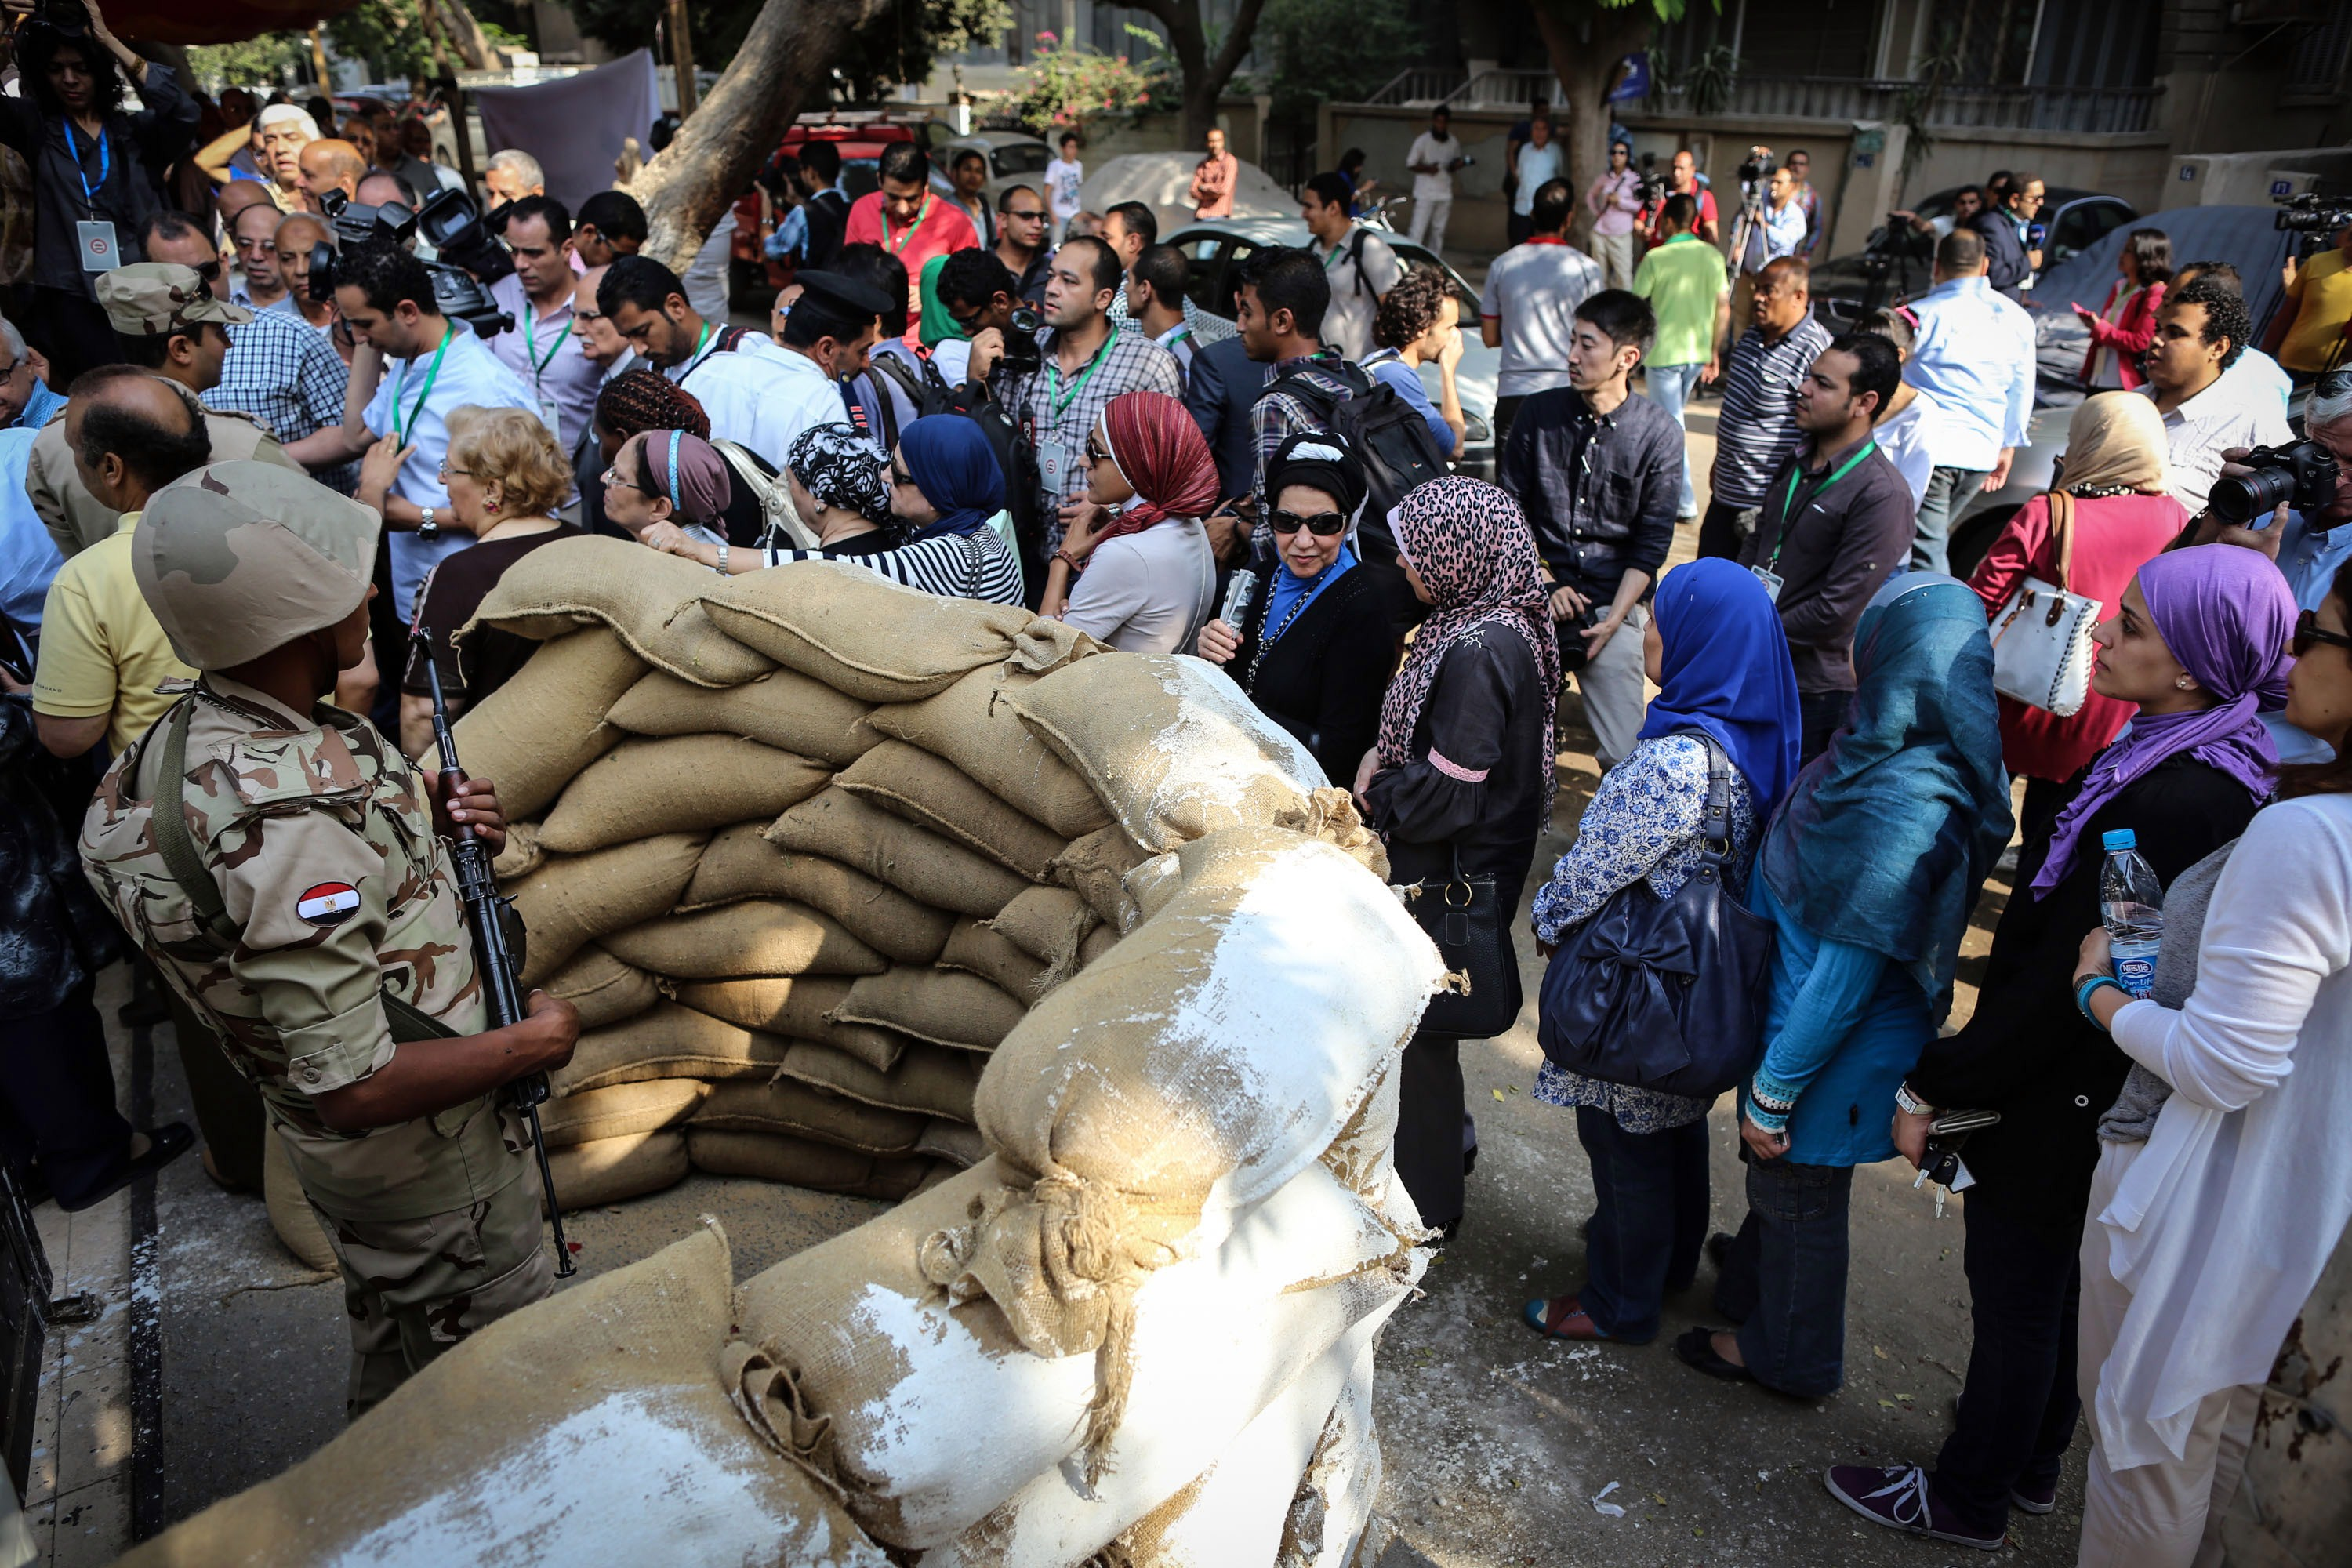 Egyptians queue outside a polling station in the capital Cairo on May 26, 2014. Egyptians voted for a new president, with the ex-army chief who overthrew the country's first democratically elected leader and crushed his Islamist movement expected to win in a landslide.  (AFP PHOTO/MOHAMED EL-SHAHED)